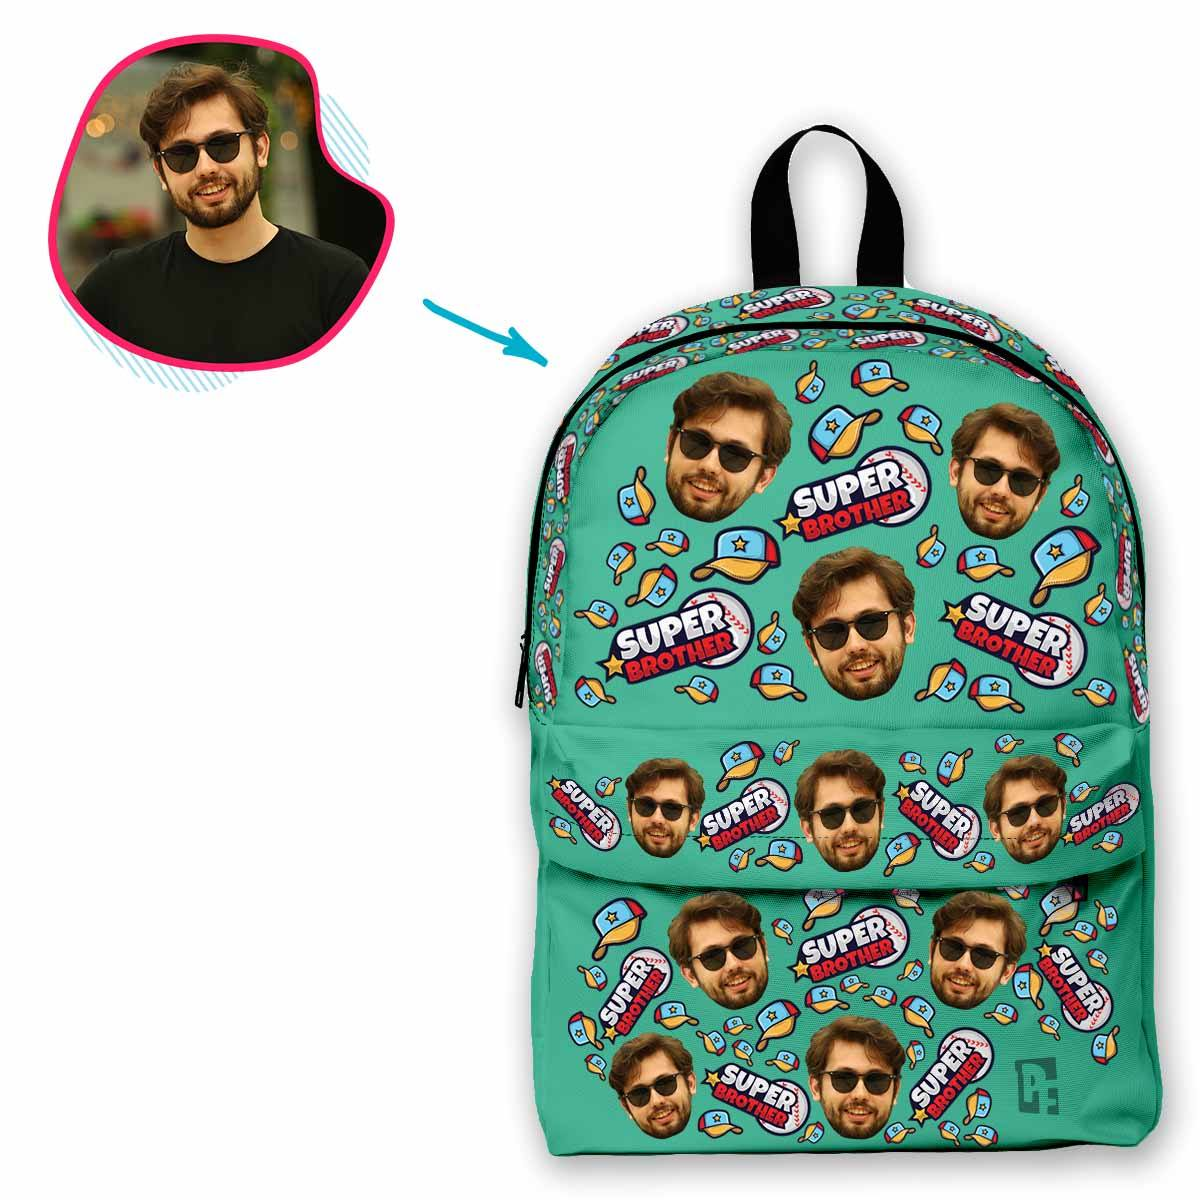 mint Super Brother classic backpack personalized with photo of face printed on it